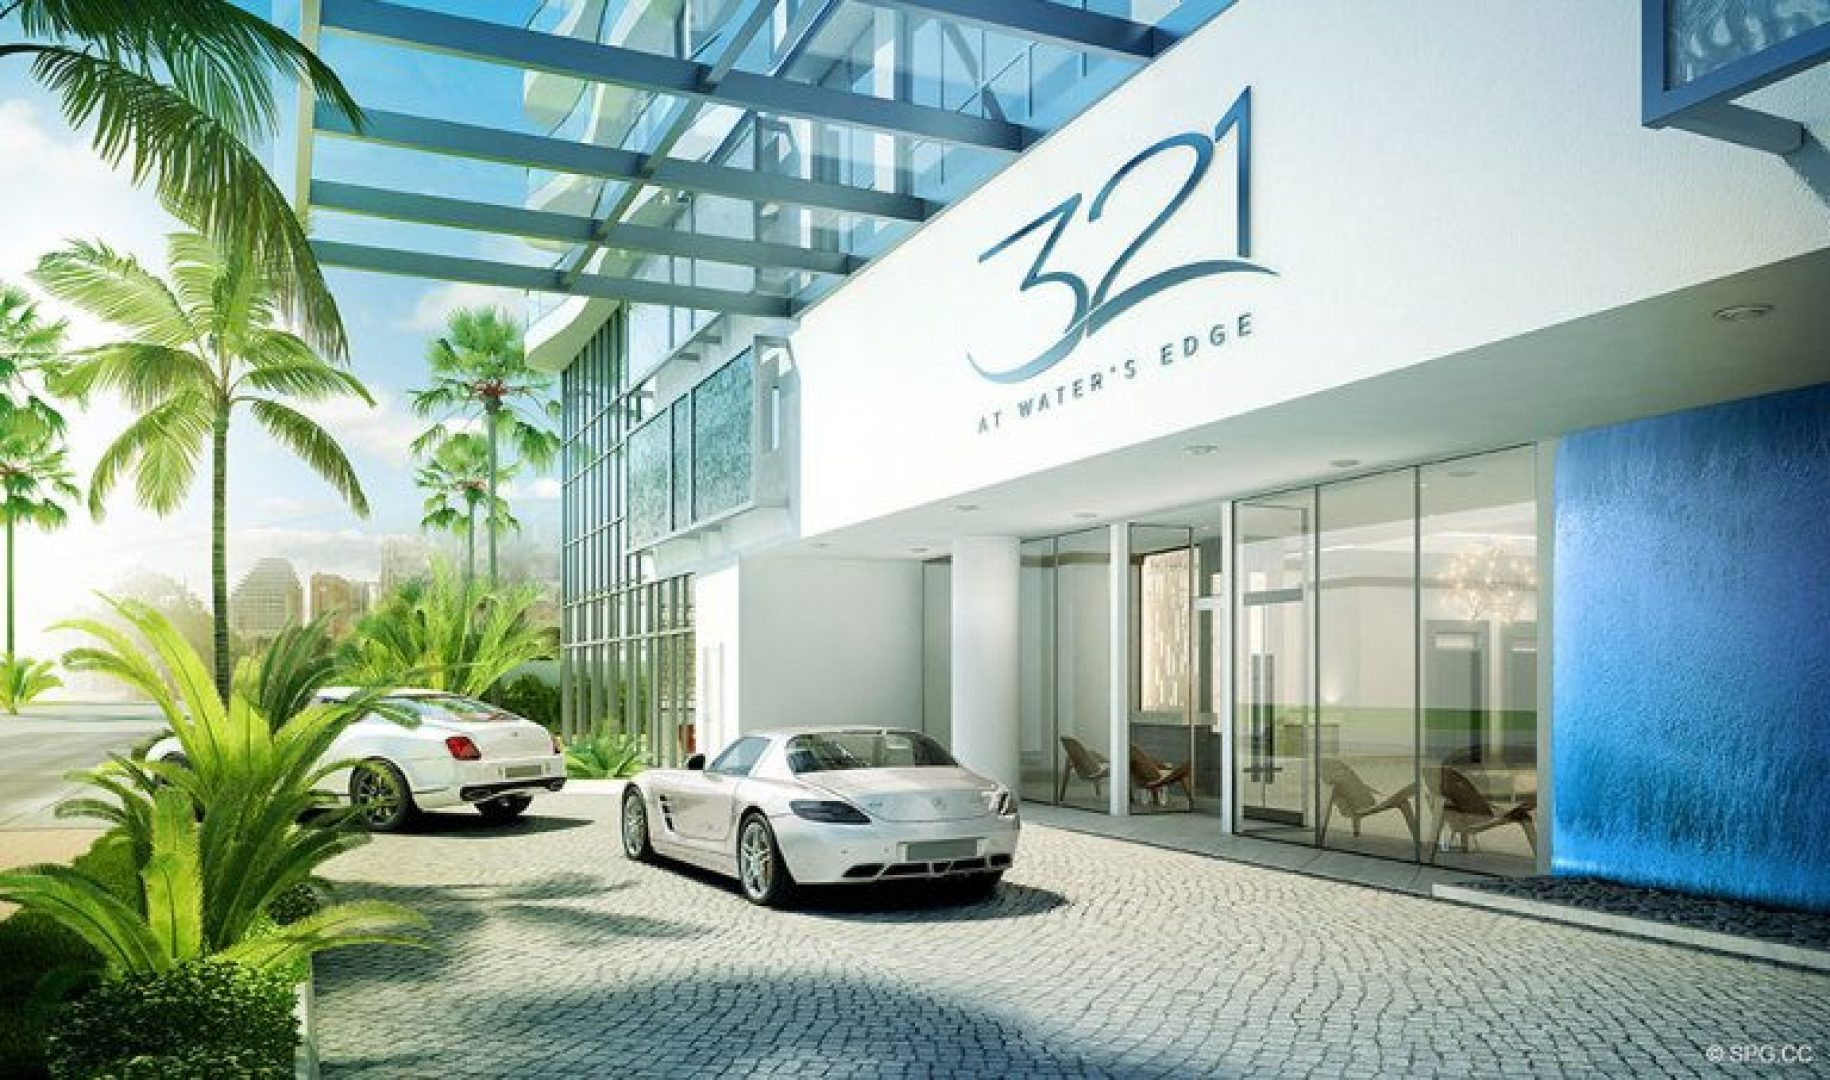 Entrance into 321 at Water's Edge, Luxury Waterfront Condos in Fort Lauderdale, Florida 33304